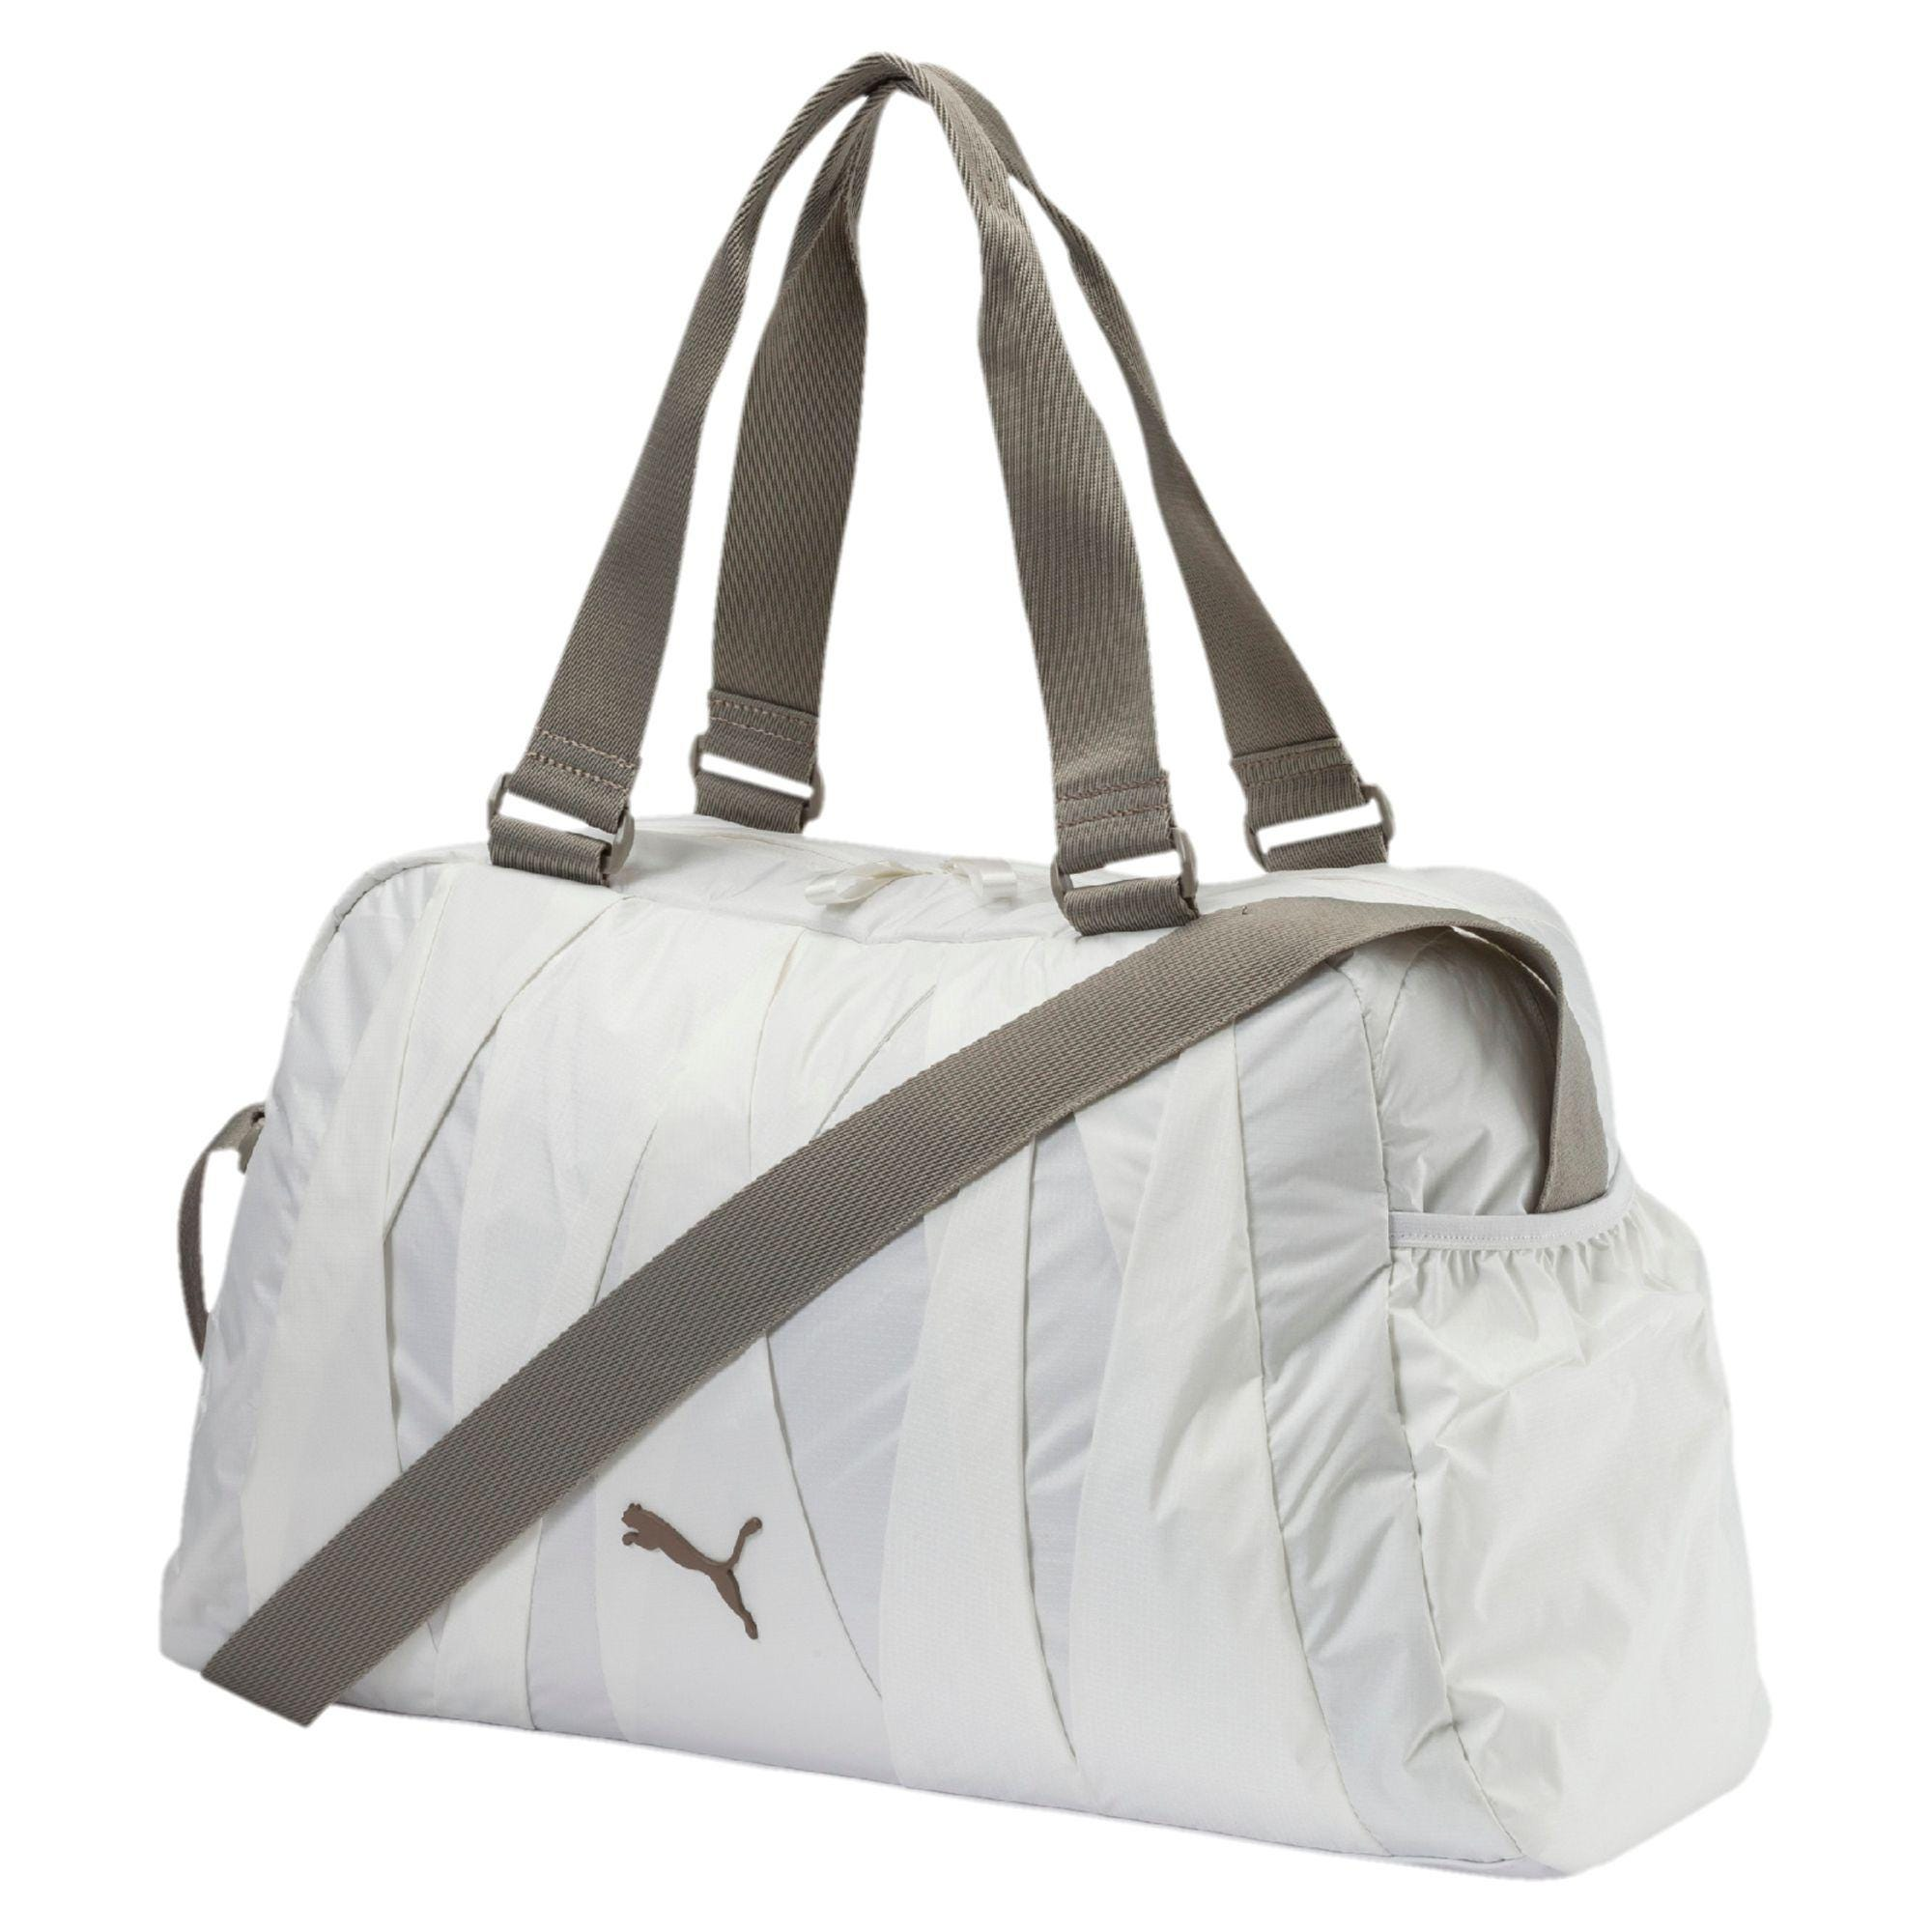 a0acce740fef Nike Duffel Bag Large Amazon